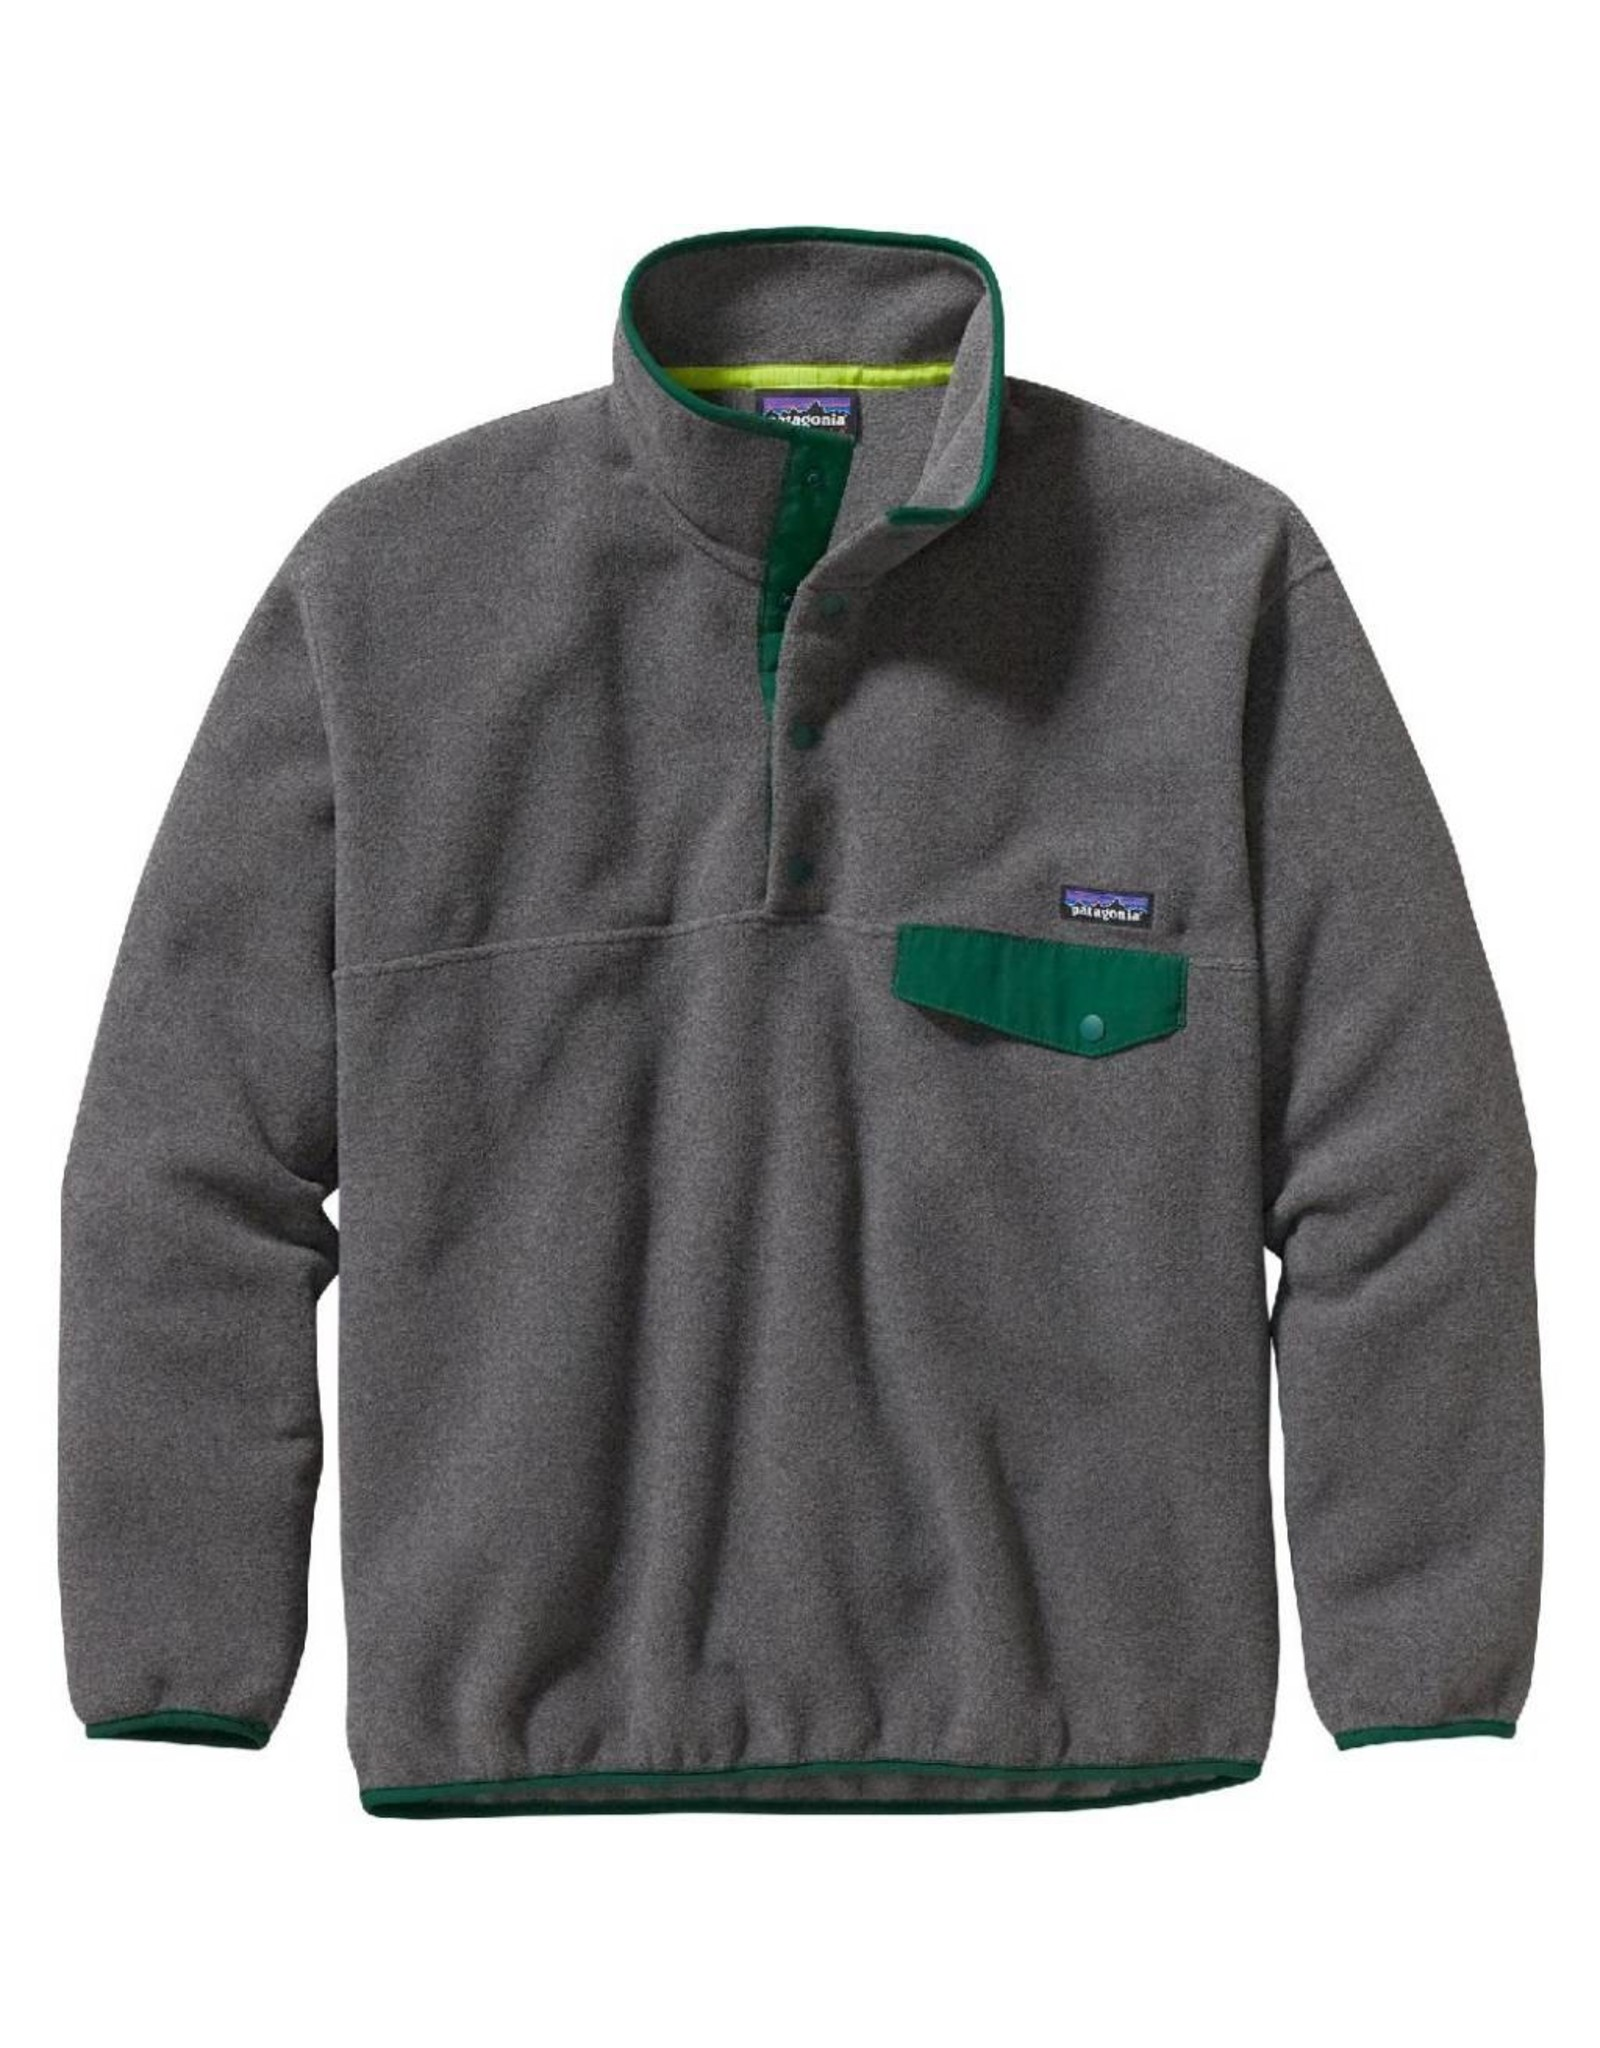 Patagonia Patagonia M's Synchilla Snap-T Fleece Pullover